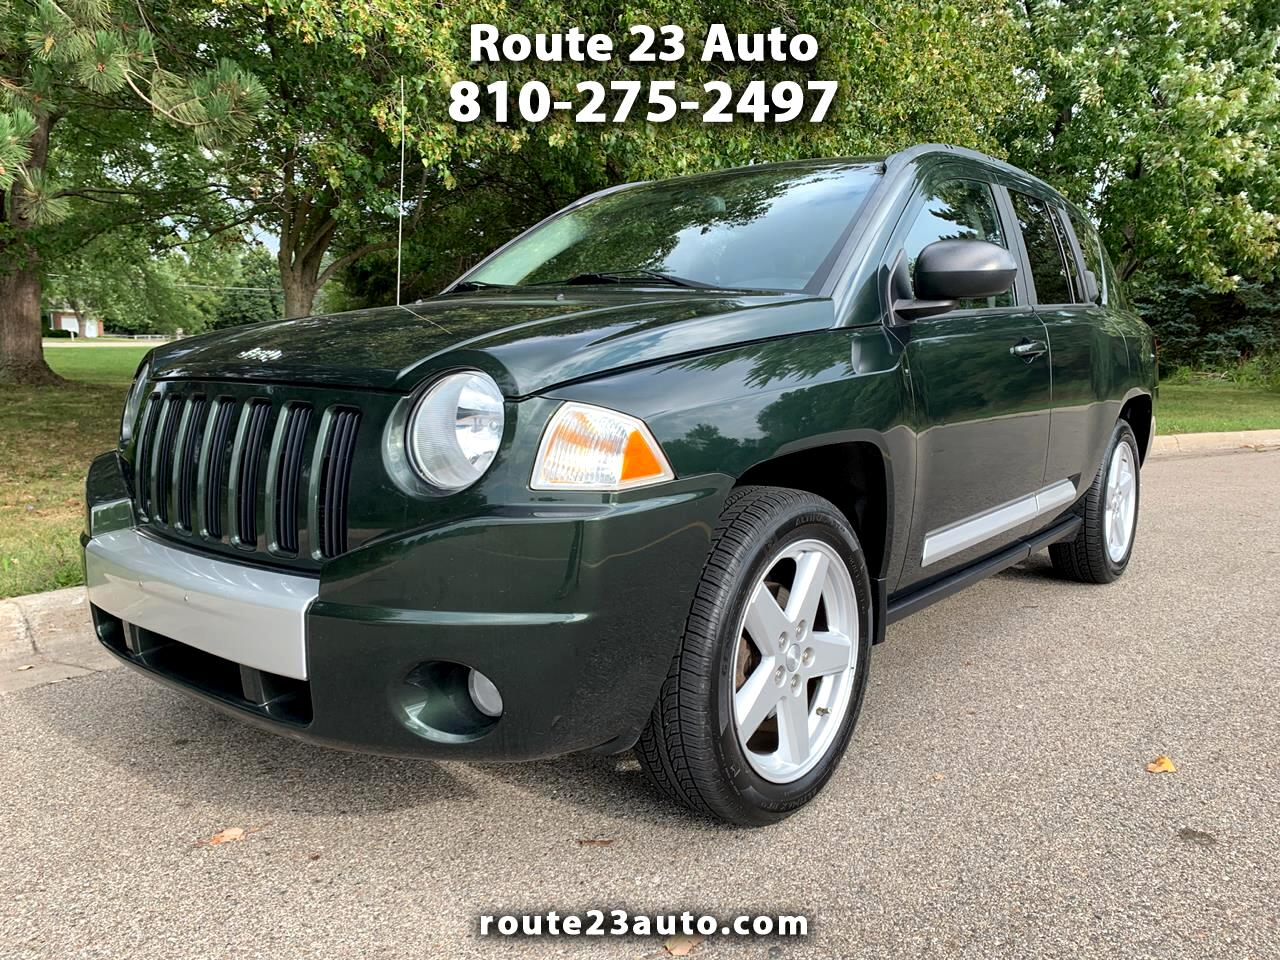 Used Tires Flint Mi >> Used 2010 Jeep Compass Limited 4wd For Sale In Flint Mi